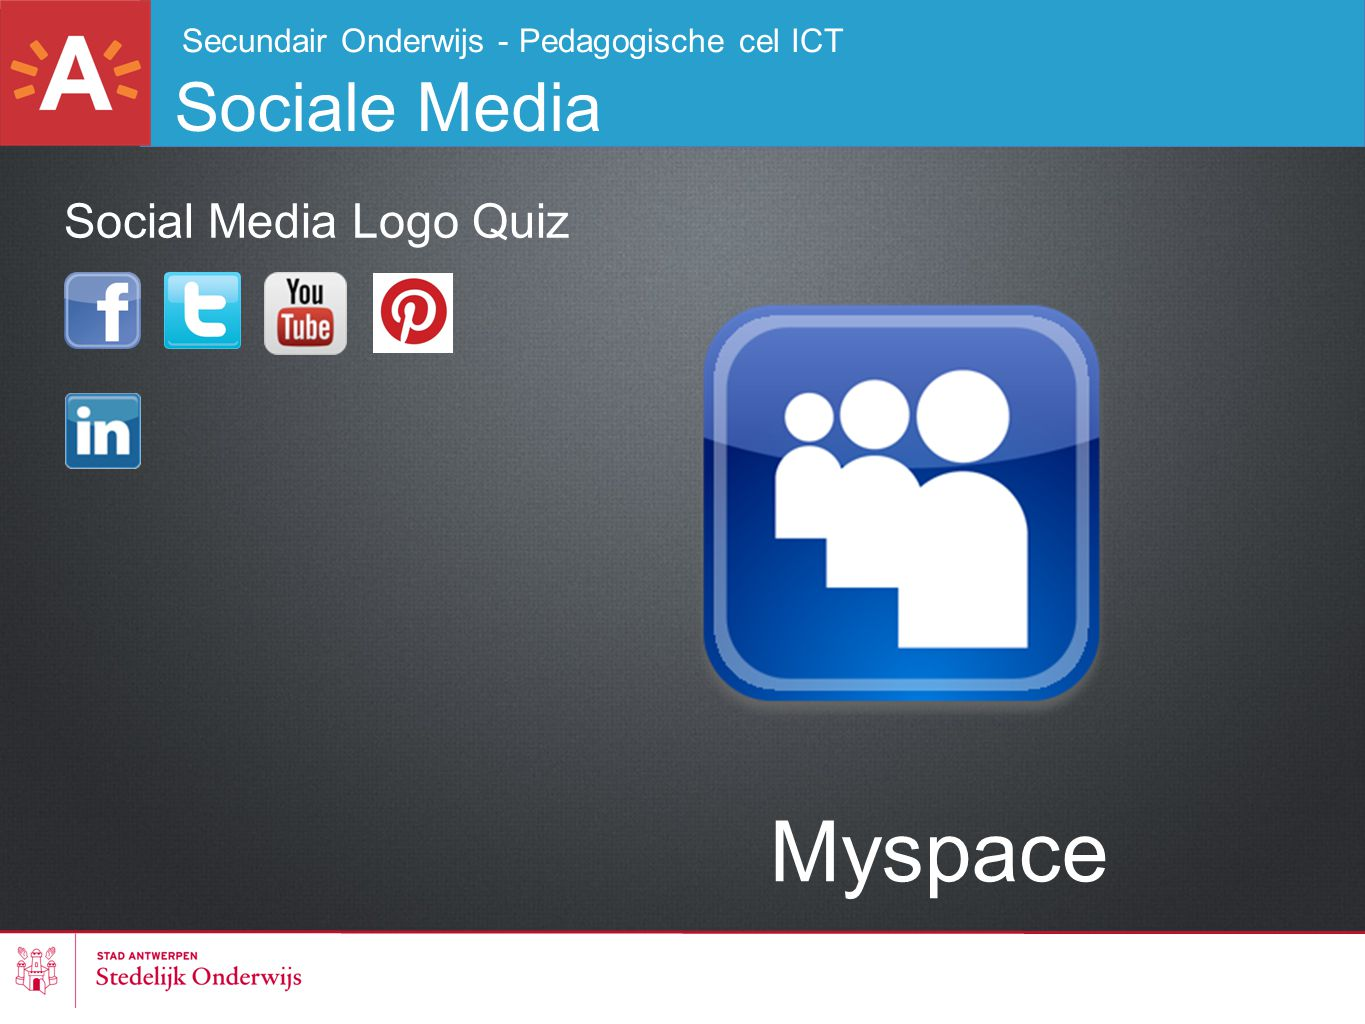 Secundair Onderwijs - Pedagogische cel ICT Sociale Media Myspace Social Media Logo Quiz